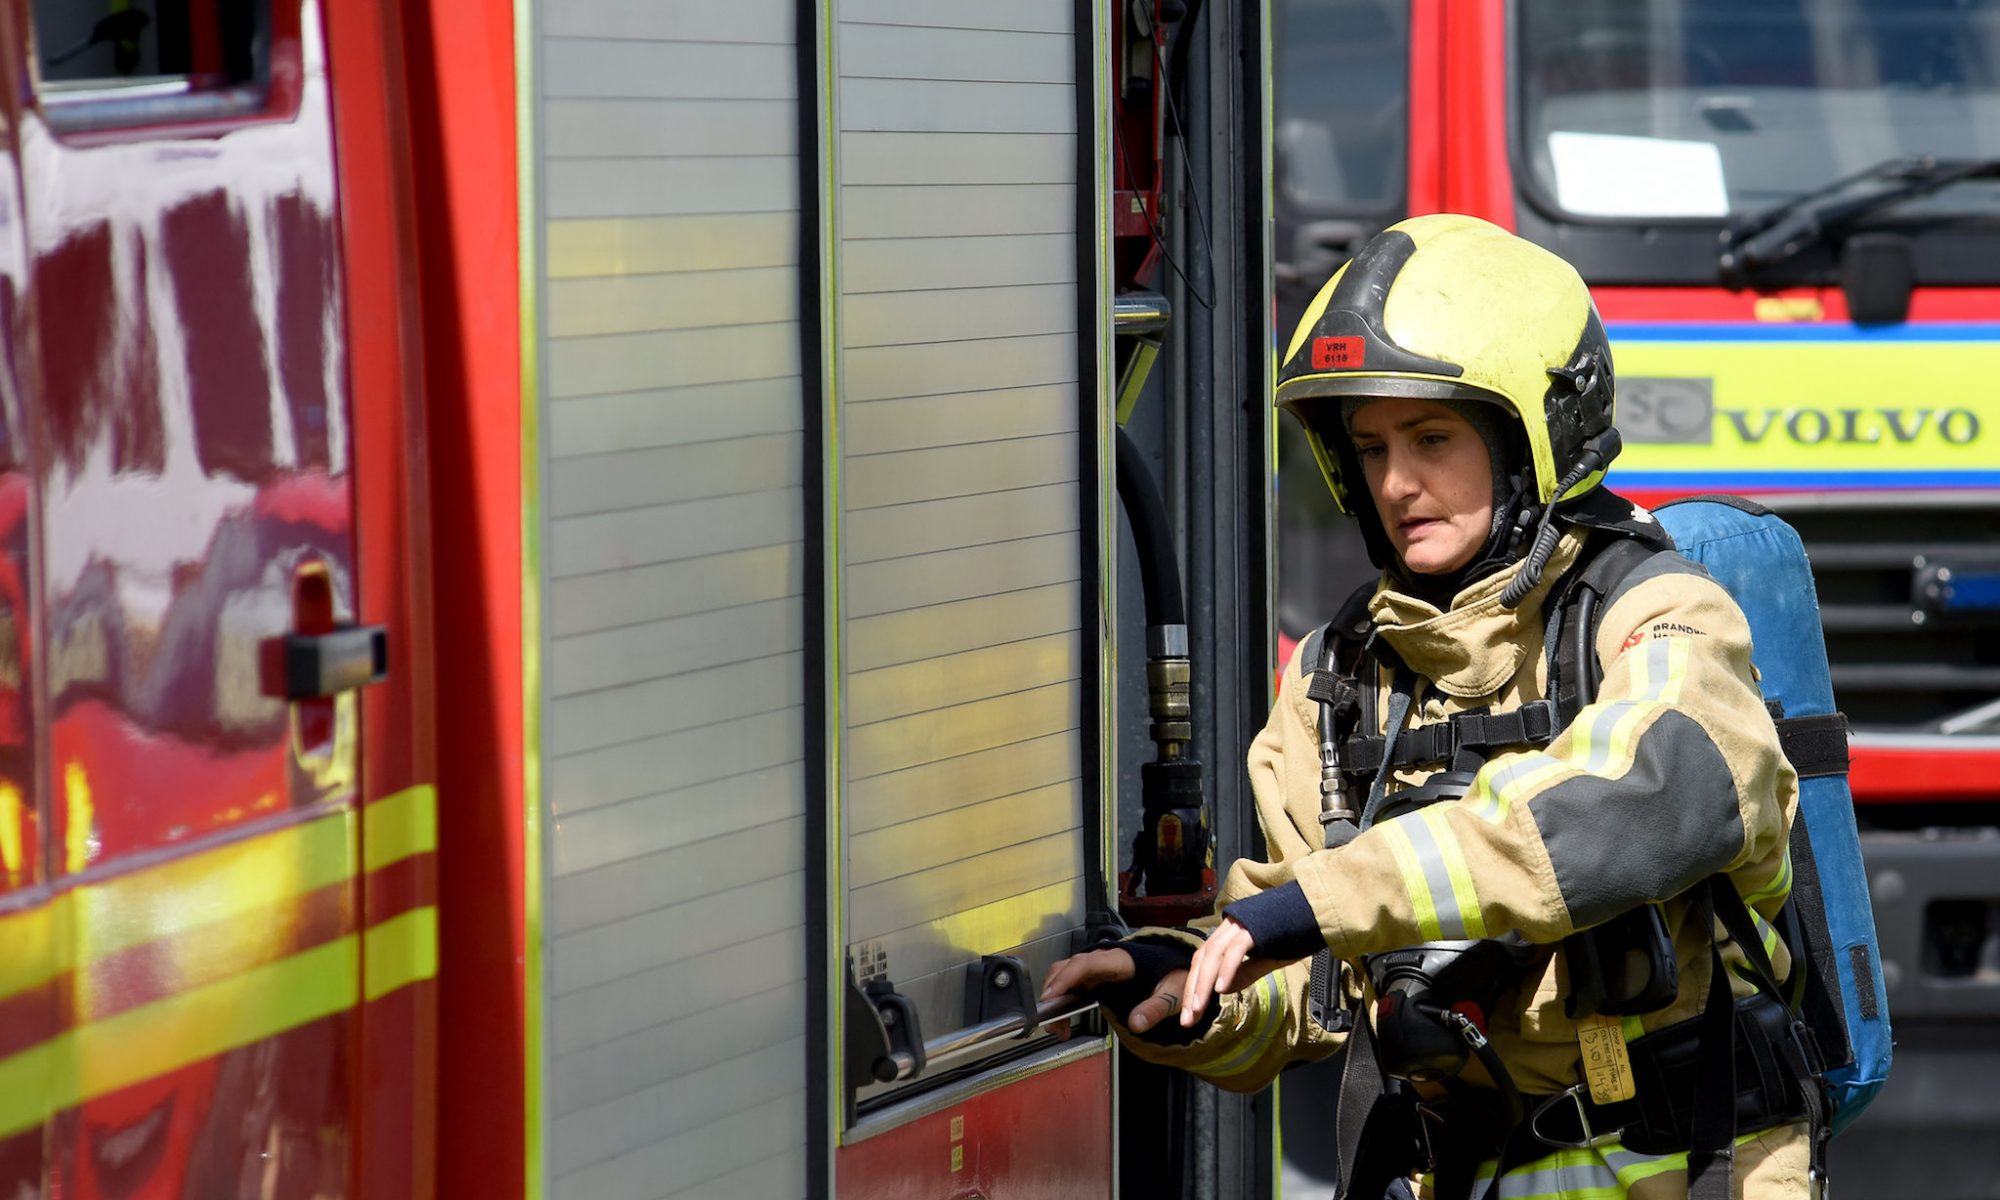 Firefighter opening the fire compartment on a fire appliance